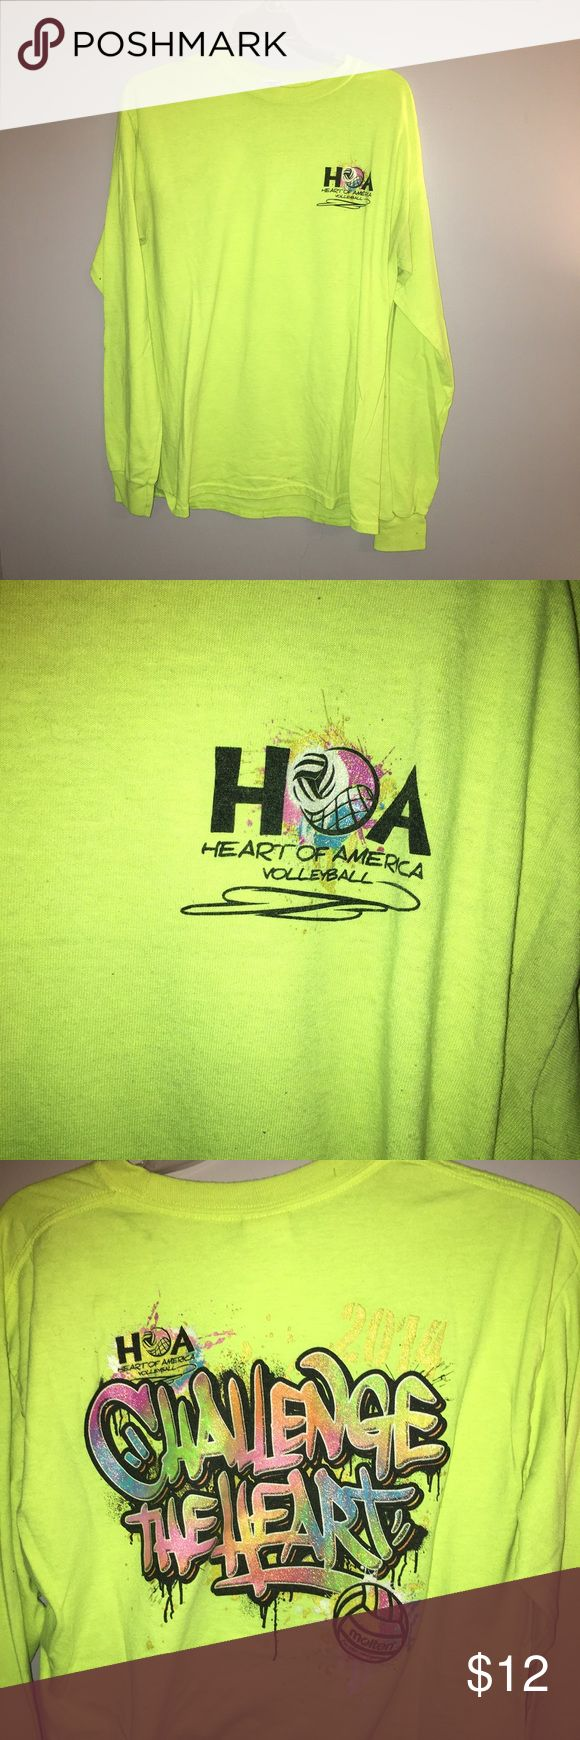 Heart of America Volleyball Tournament Tee This has only been worn a few times and is great for any volleyball players. I don't play anymore so I don't really want it anymore. Tops Tees - Long Sleeve